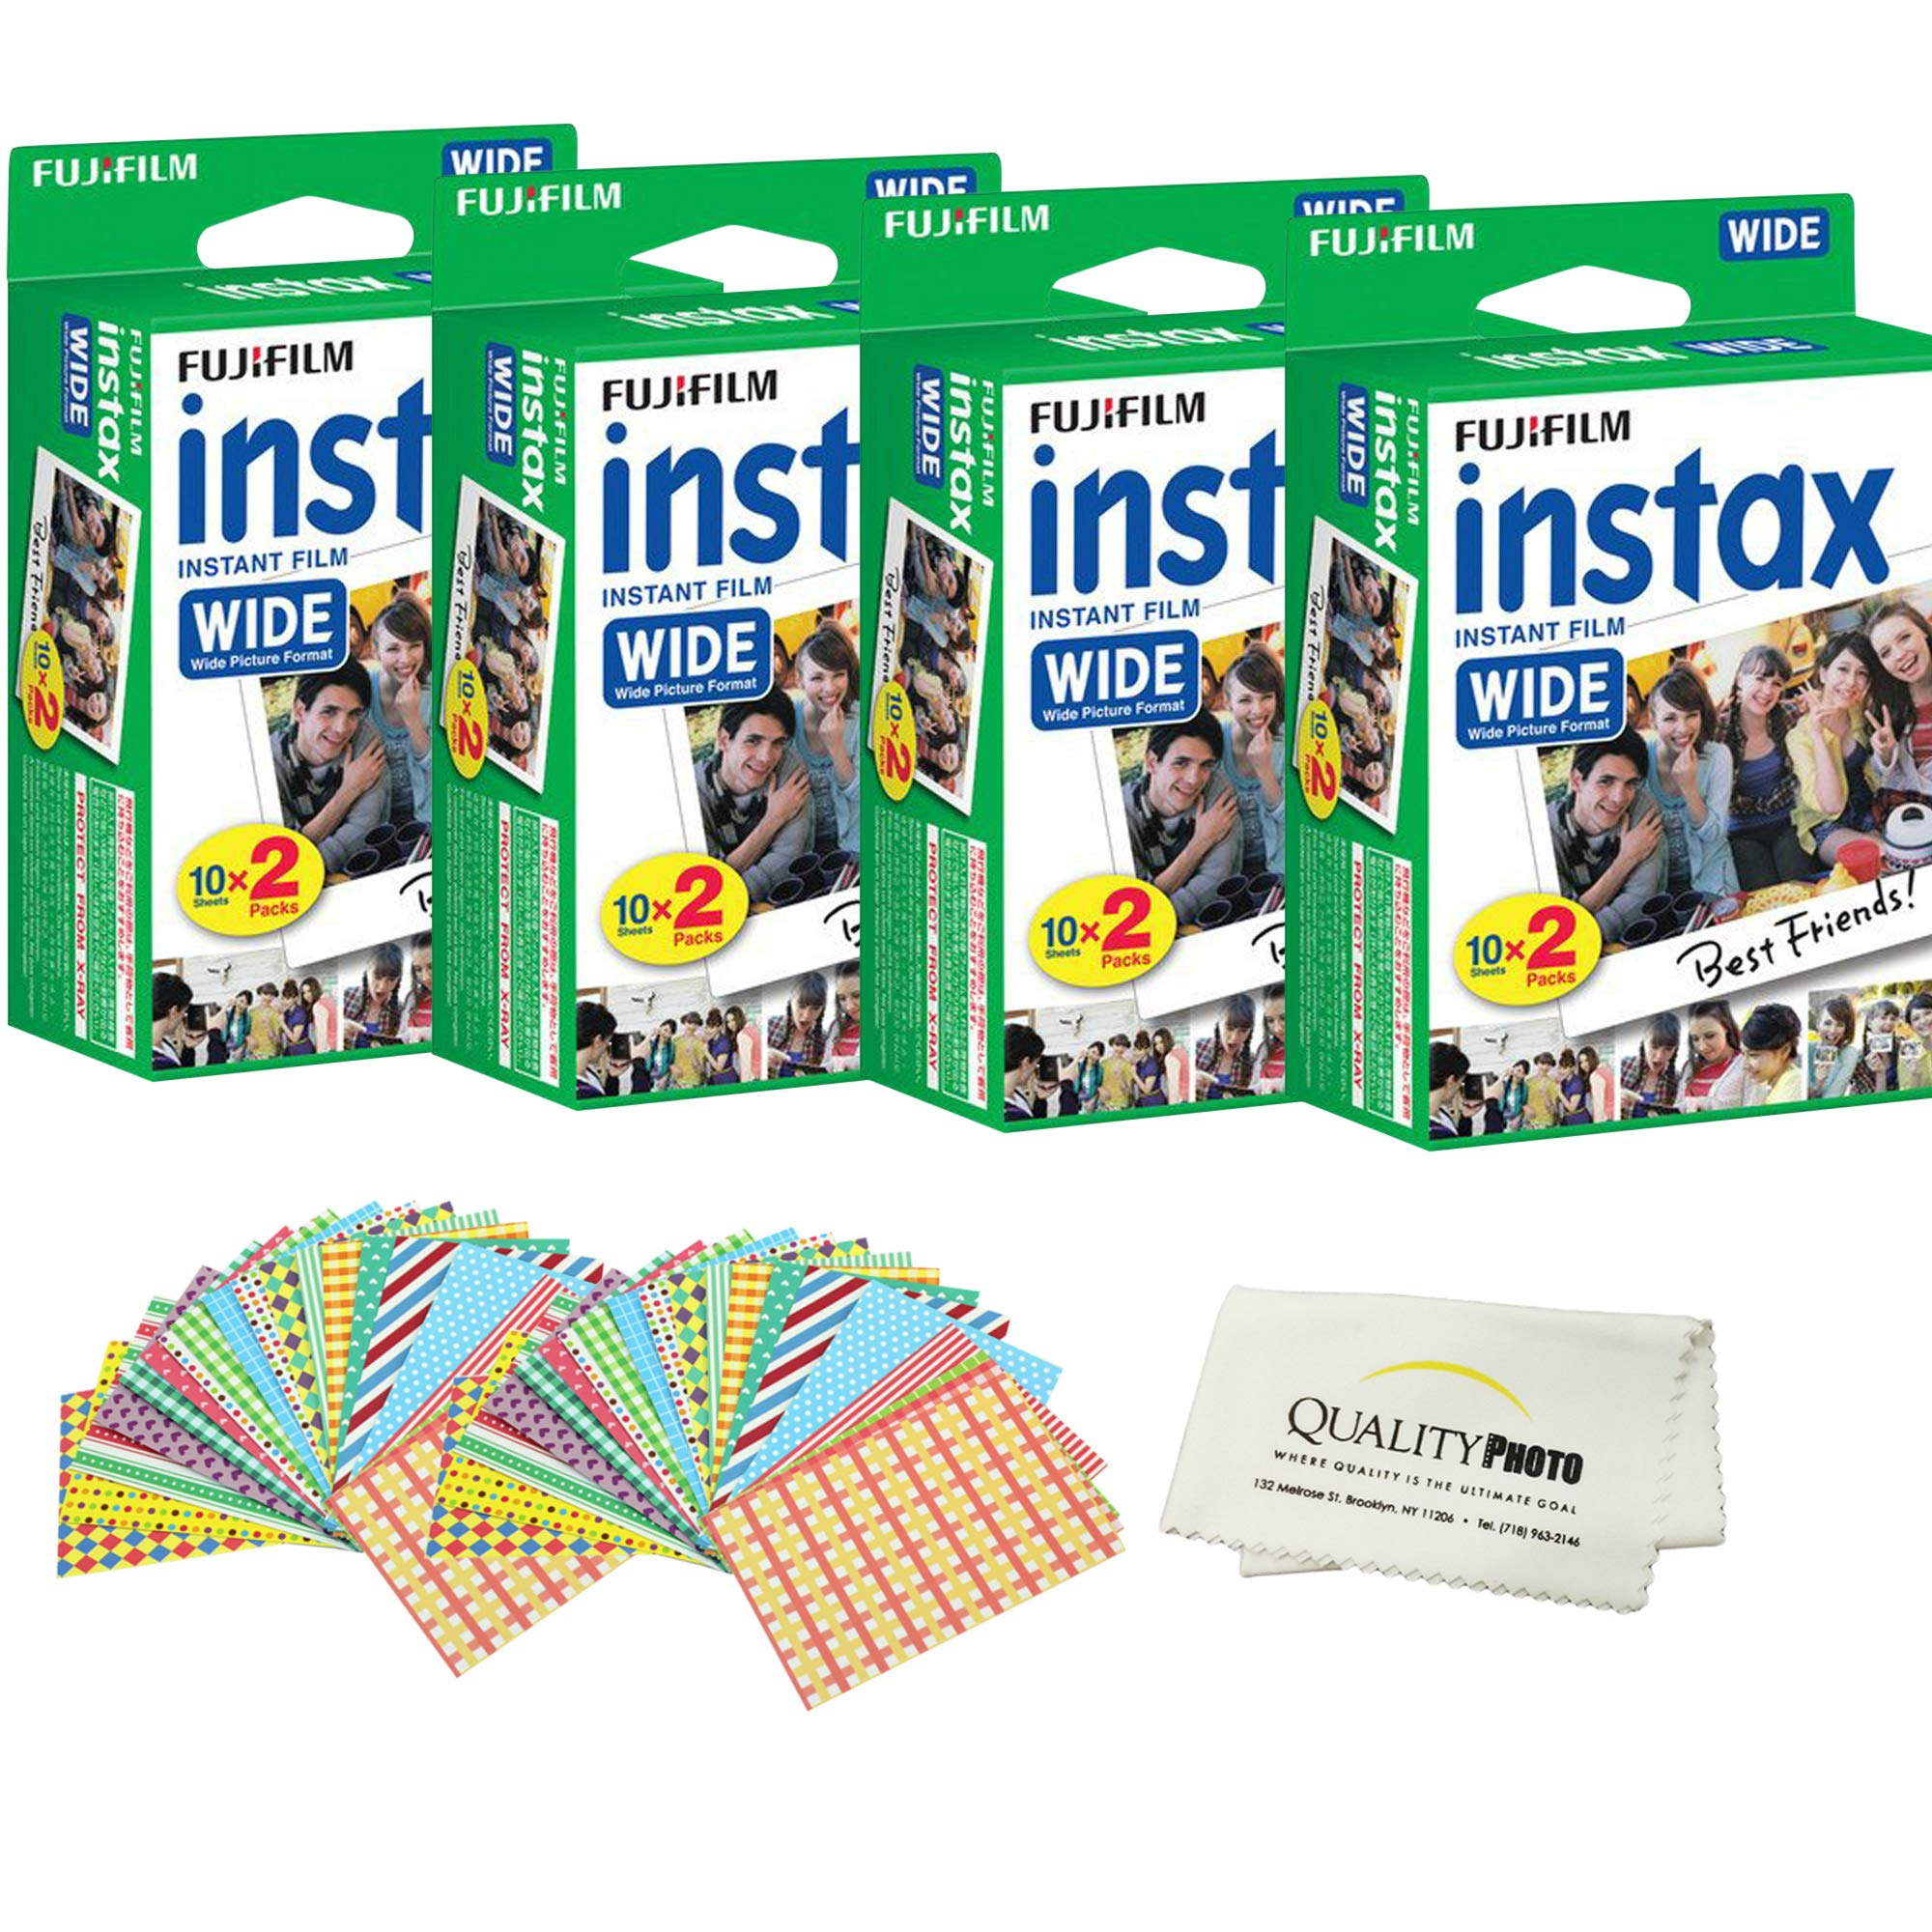 Fujifilm INSTAX Wide Instant Film 80 Pack - 80 Sheets - (White) for Fujifilm Instax Wide Cameras + Frame Stickers and Microfiber Cloth Accessories by Fujifilm